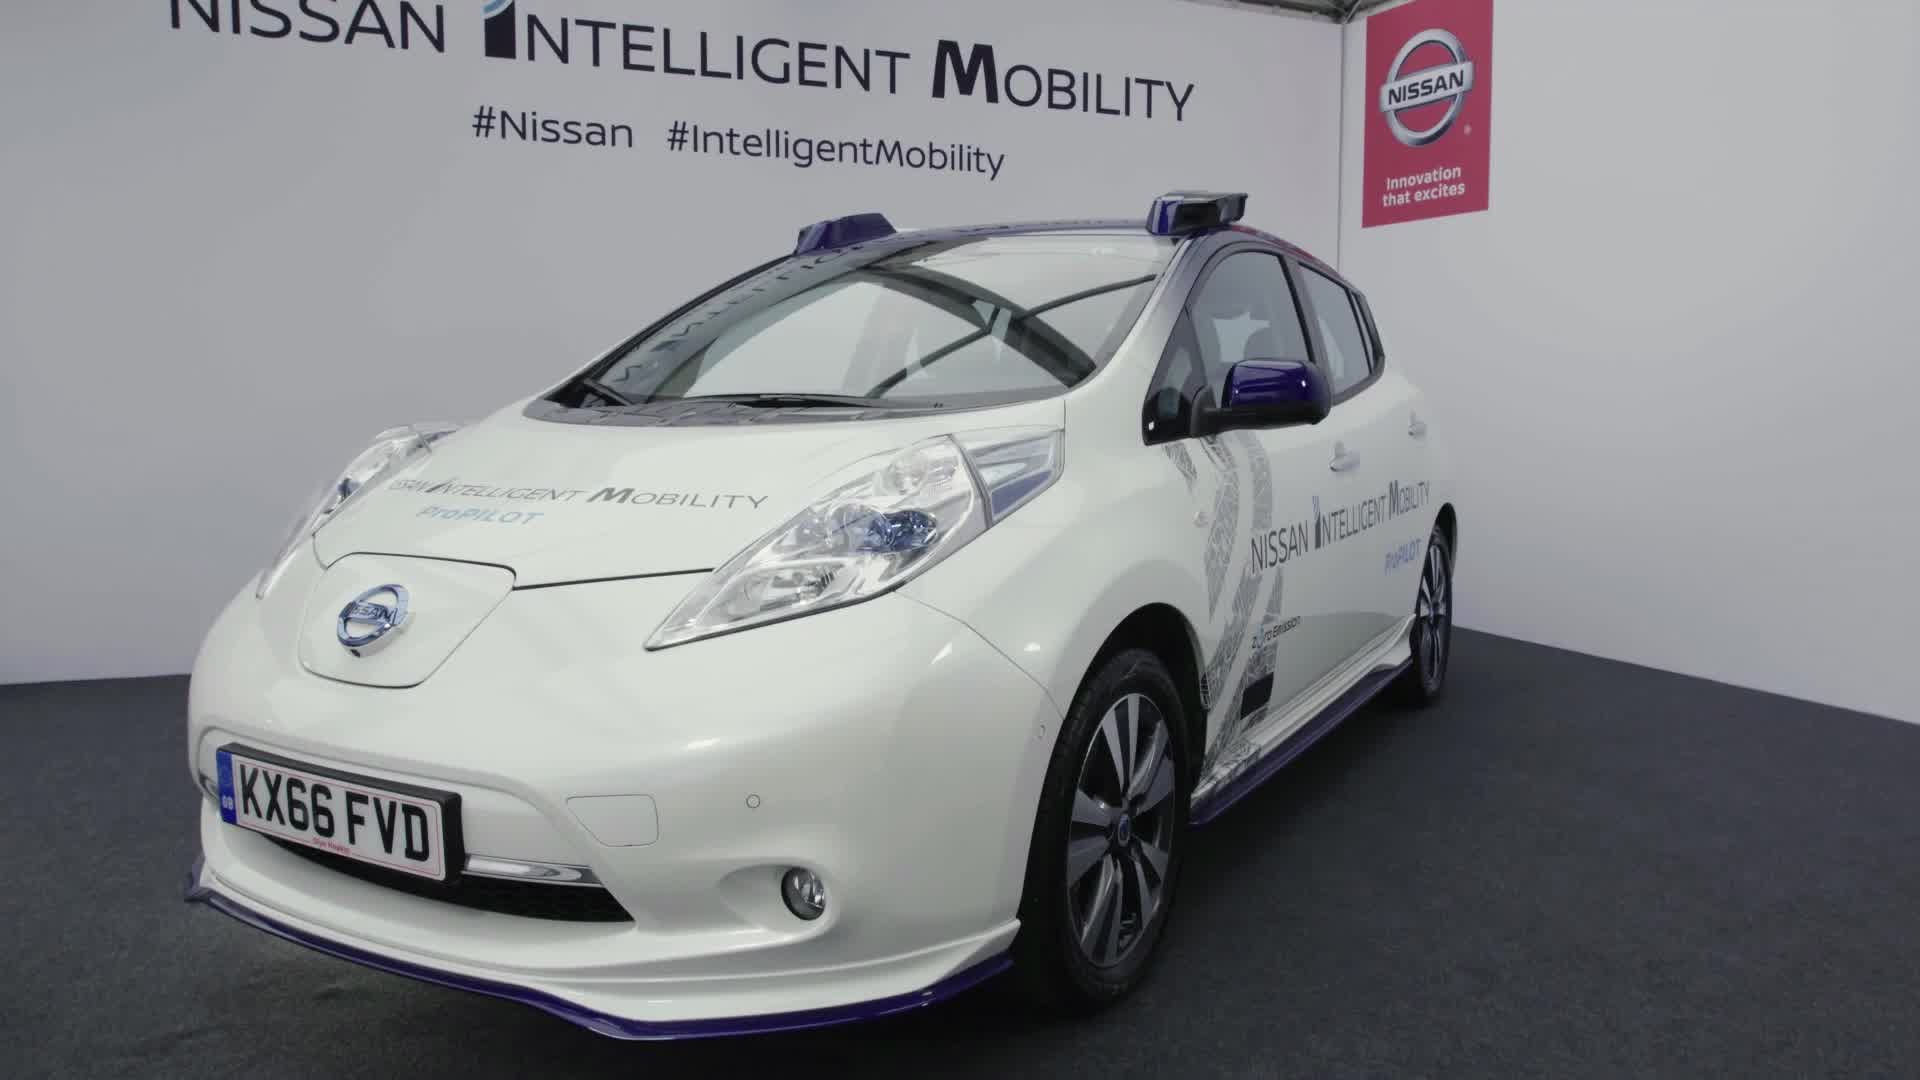 Nissan conducts on road autonomous vehicle testing in Europe